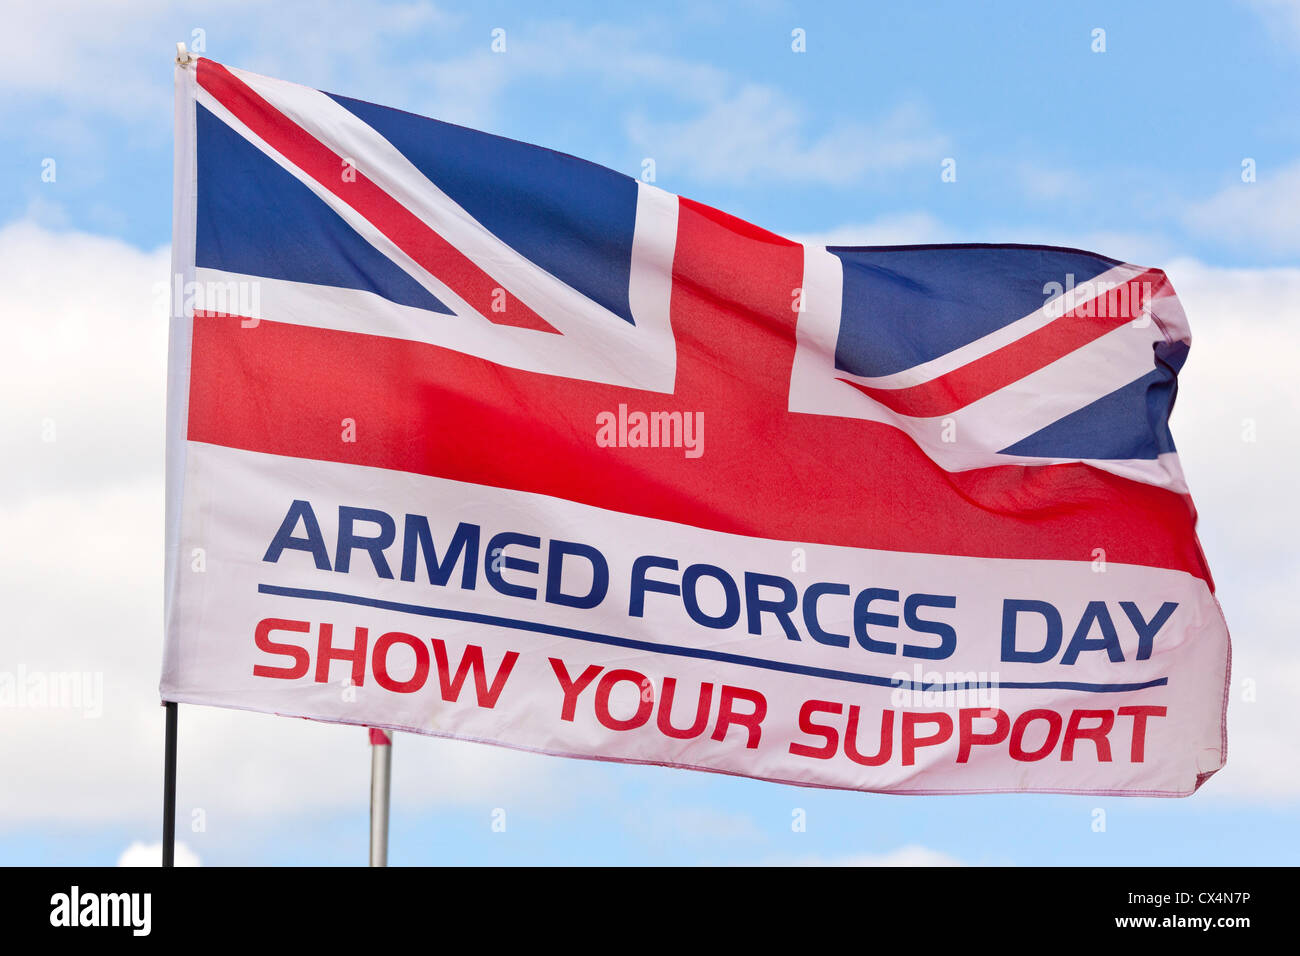 'Armed Forces Day - Show Your Support' flag at Best of British Show, Cotswold (Kemble EGBP) Airport. JMH6072 - Stock Image